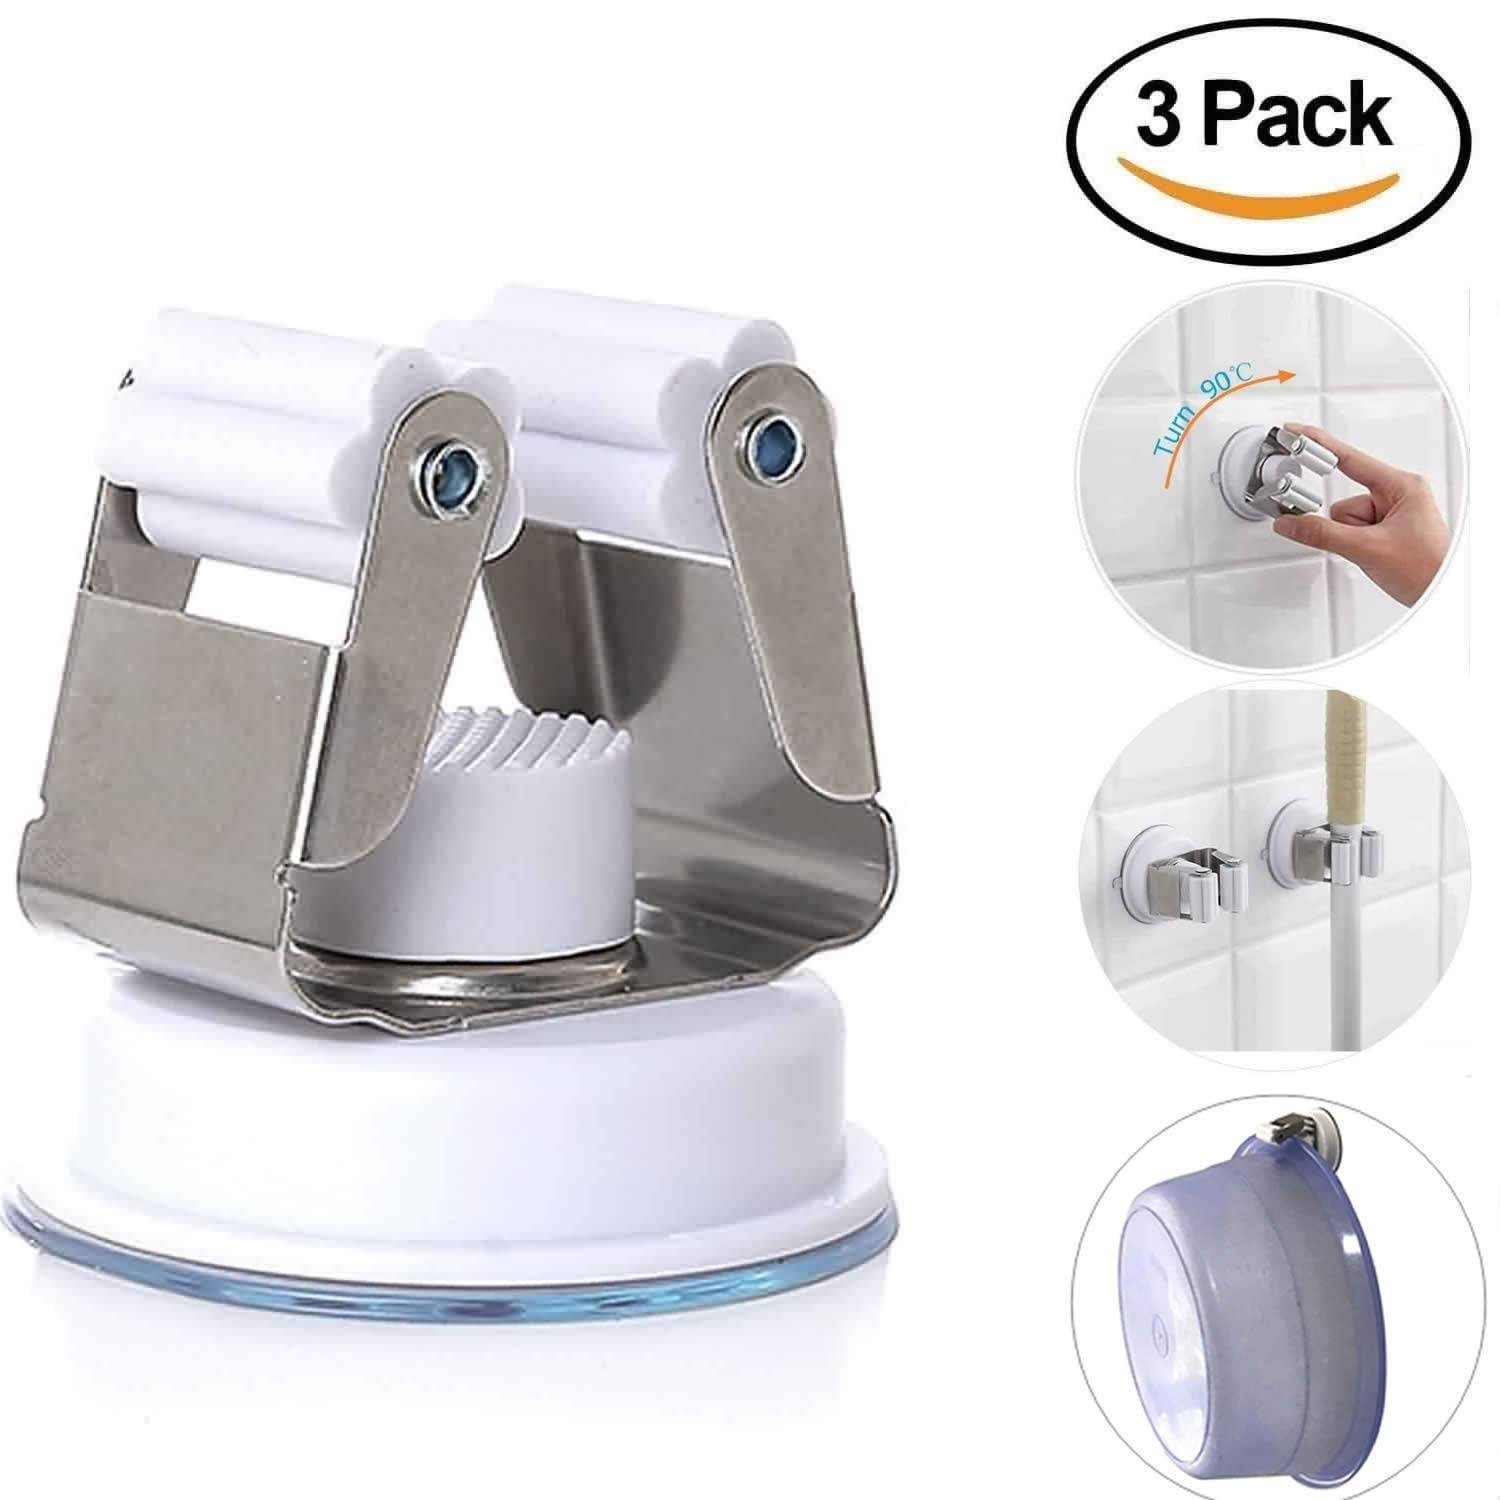 (3 Pack) Multifunction Heavy Duty Suction Cup Hooks Real 304 Stainless Steel - Home Kitchen Bathroom Restroom Office for Umbrella, Basin, Mop, Broom, Dustpan, Shower, by Sonkoo